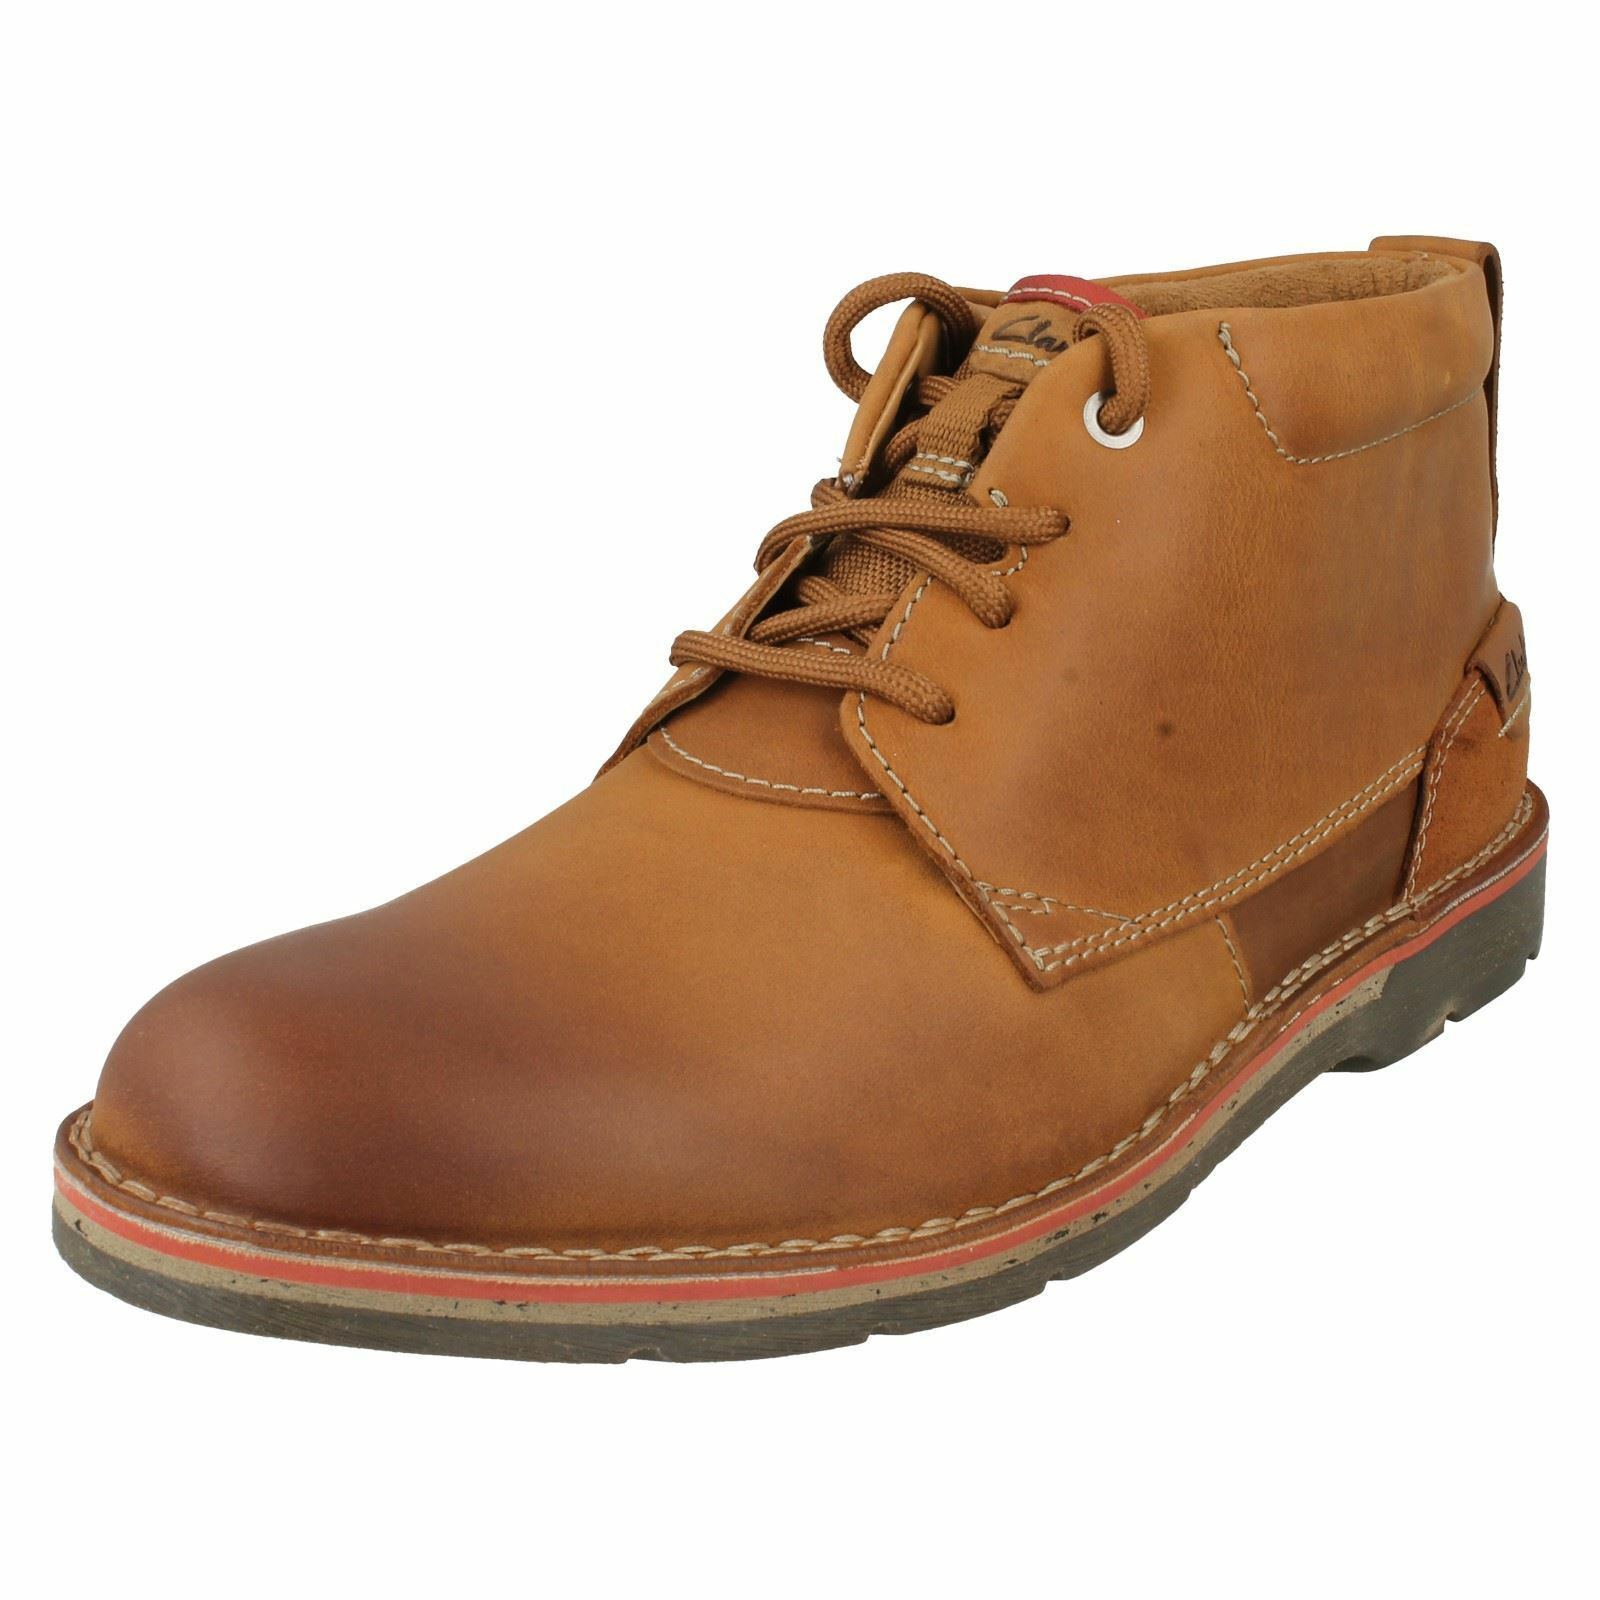 Men's Casual Clarks Casual Men's Lace Up Boots Style - Edgewick Mid a9b202